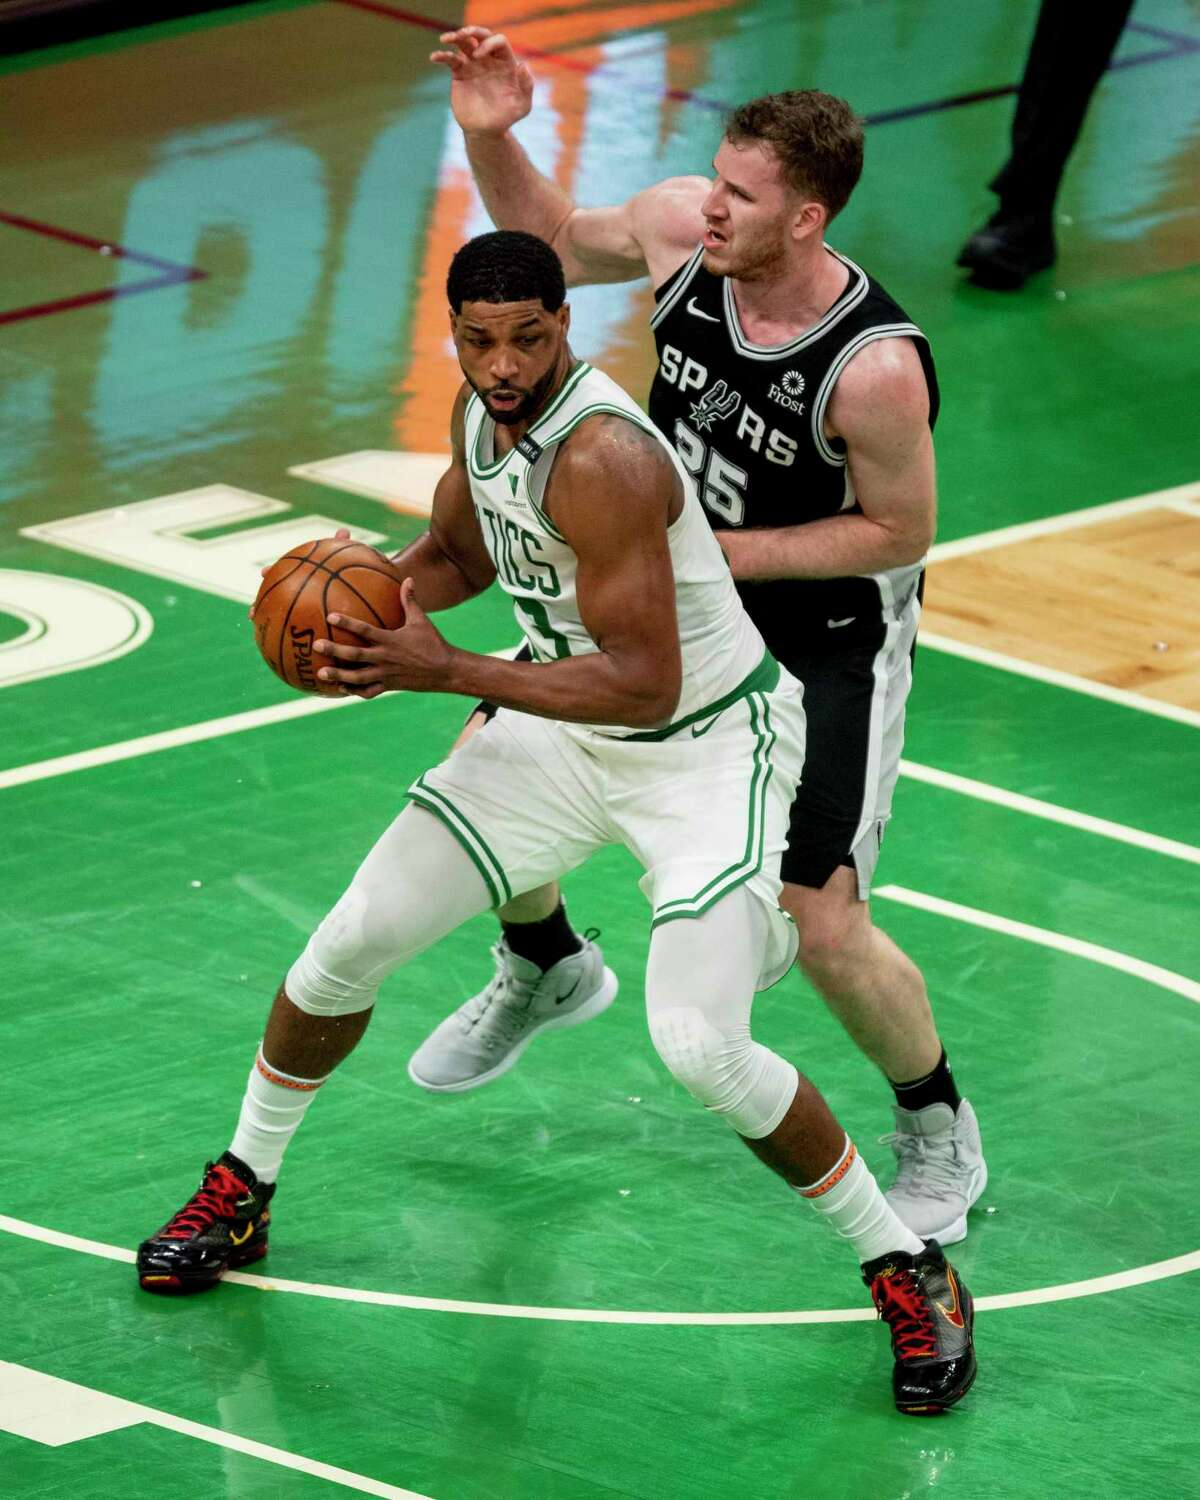 BOSTON, MASSACHUSETTS - APRIL 30: Tristan Thompson #13 of the Boston Celtics and Jakob Poeltl #25 of the San Antonio Spurs battle for a rebound at TD Garden on April 30, 2021 in Boston, Massachusetts. NOTE TO USER: User expressly acknowledges and agrees that, by downloading and or using this photograph, User is consenting to the terms and conditions of the Getty Images License Agreement. (Photo by Maddie Malhotra/Getty Images)